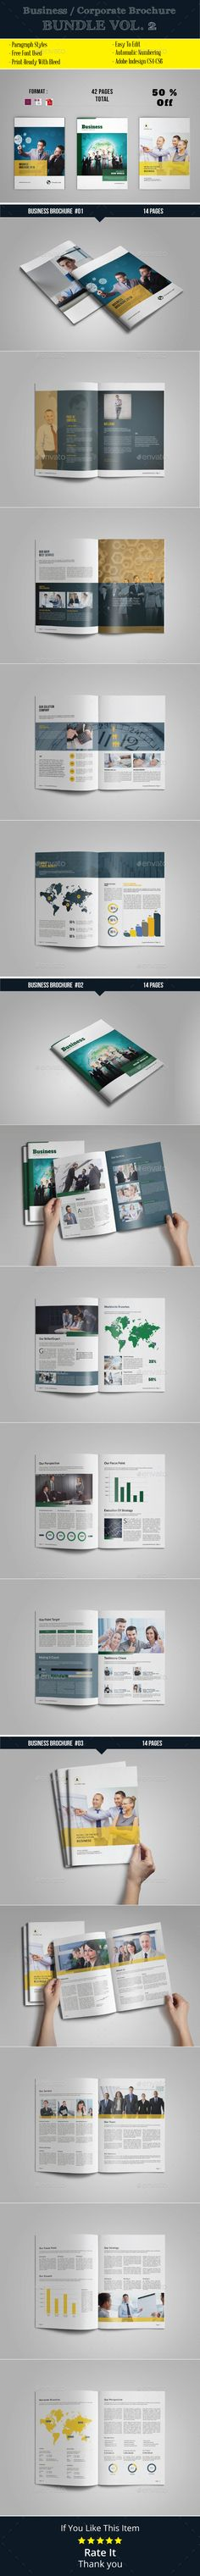 College \ University Brochure Template - Word \ Publisher - download brochure templates for microsoft word